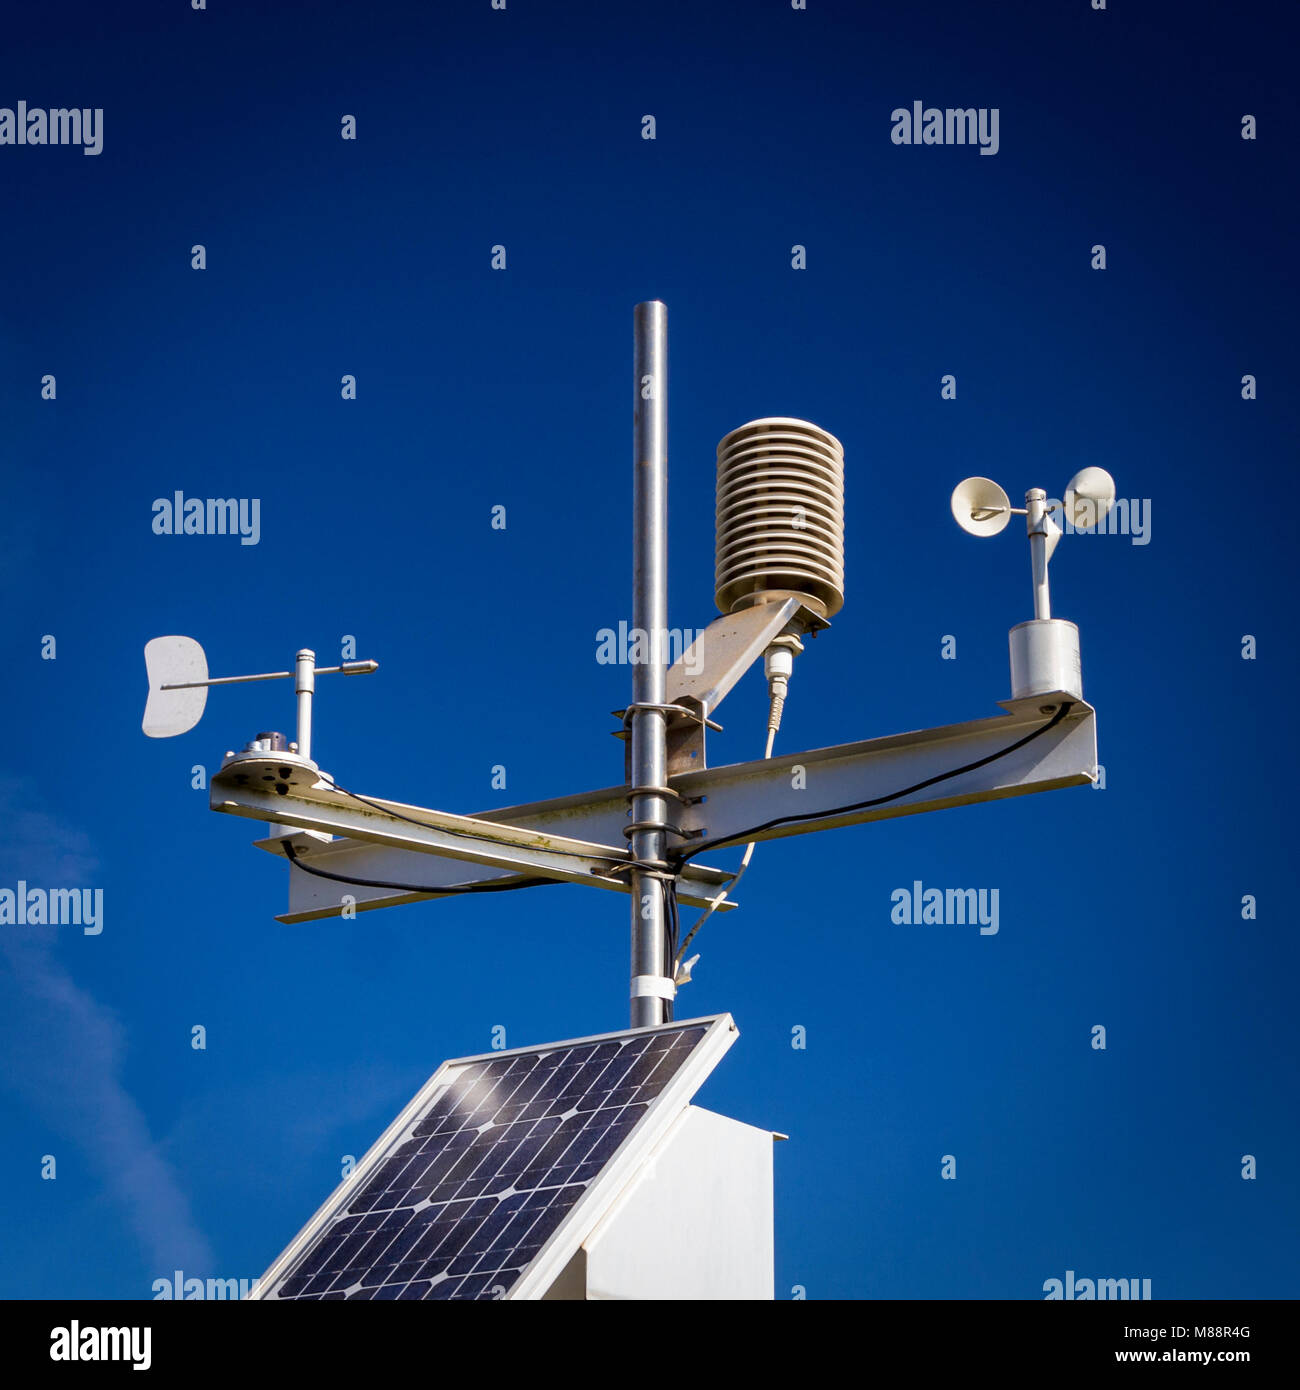 Automated weather station measuring atmospheric conditions - Stock Image